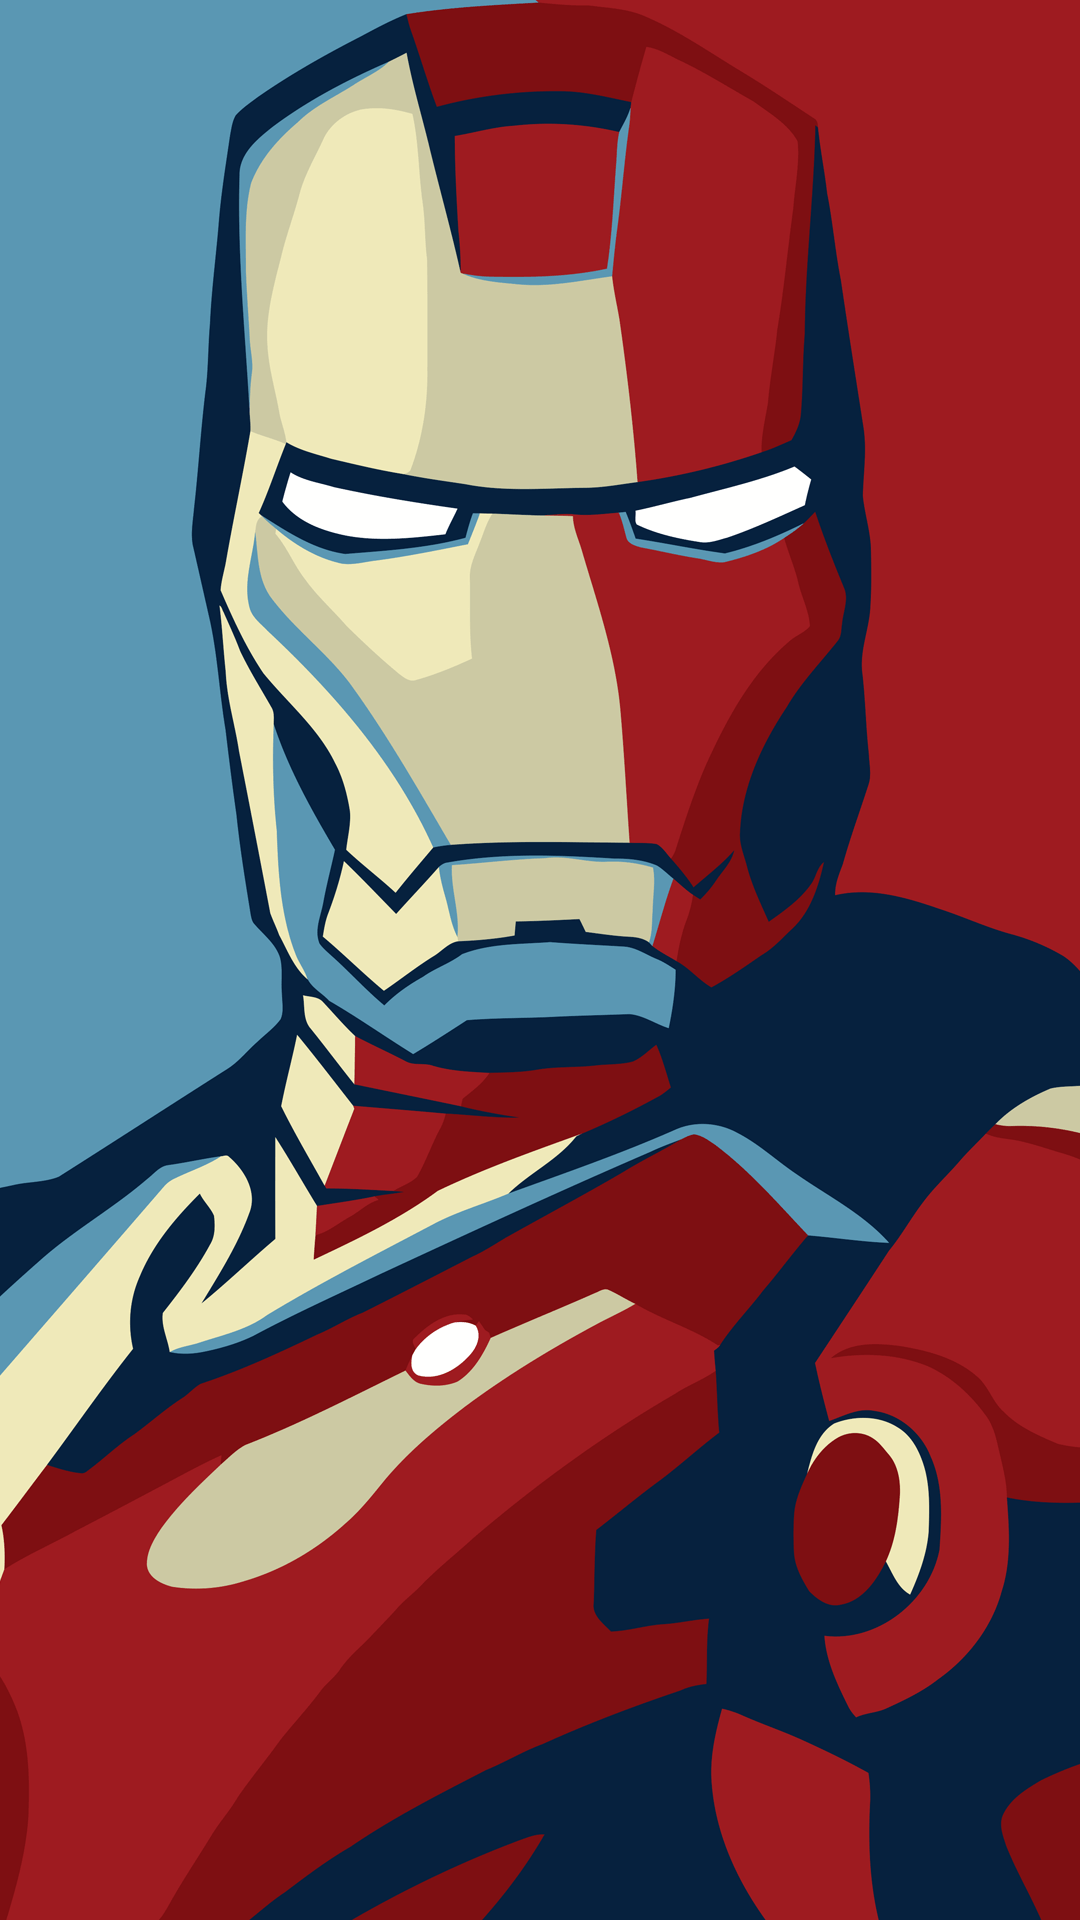 Iron Man Android Iphone Desktop Hd Backgrounds Wallpapers 1080p 4k 115788 Hdwallpapers Andr Iron Man Art Iron Man Wallpaper Iron Man Hd Wallpaper